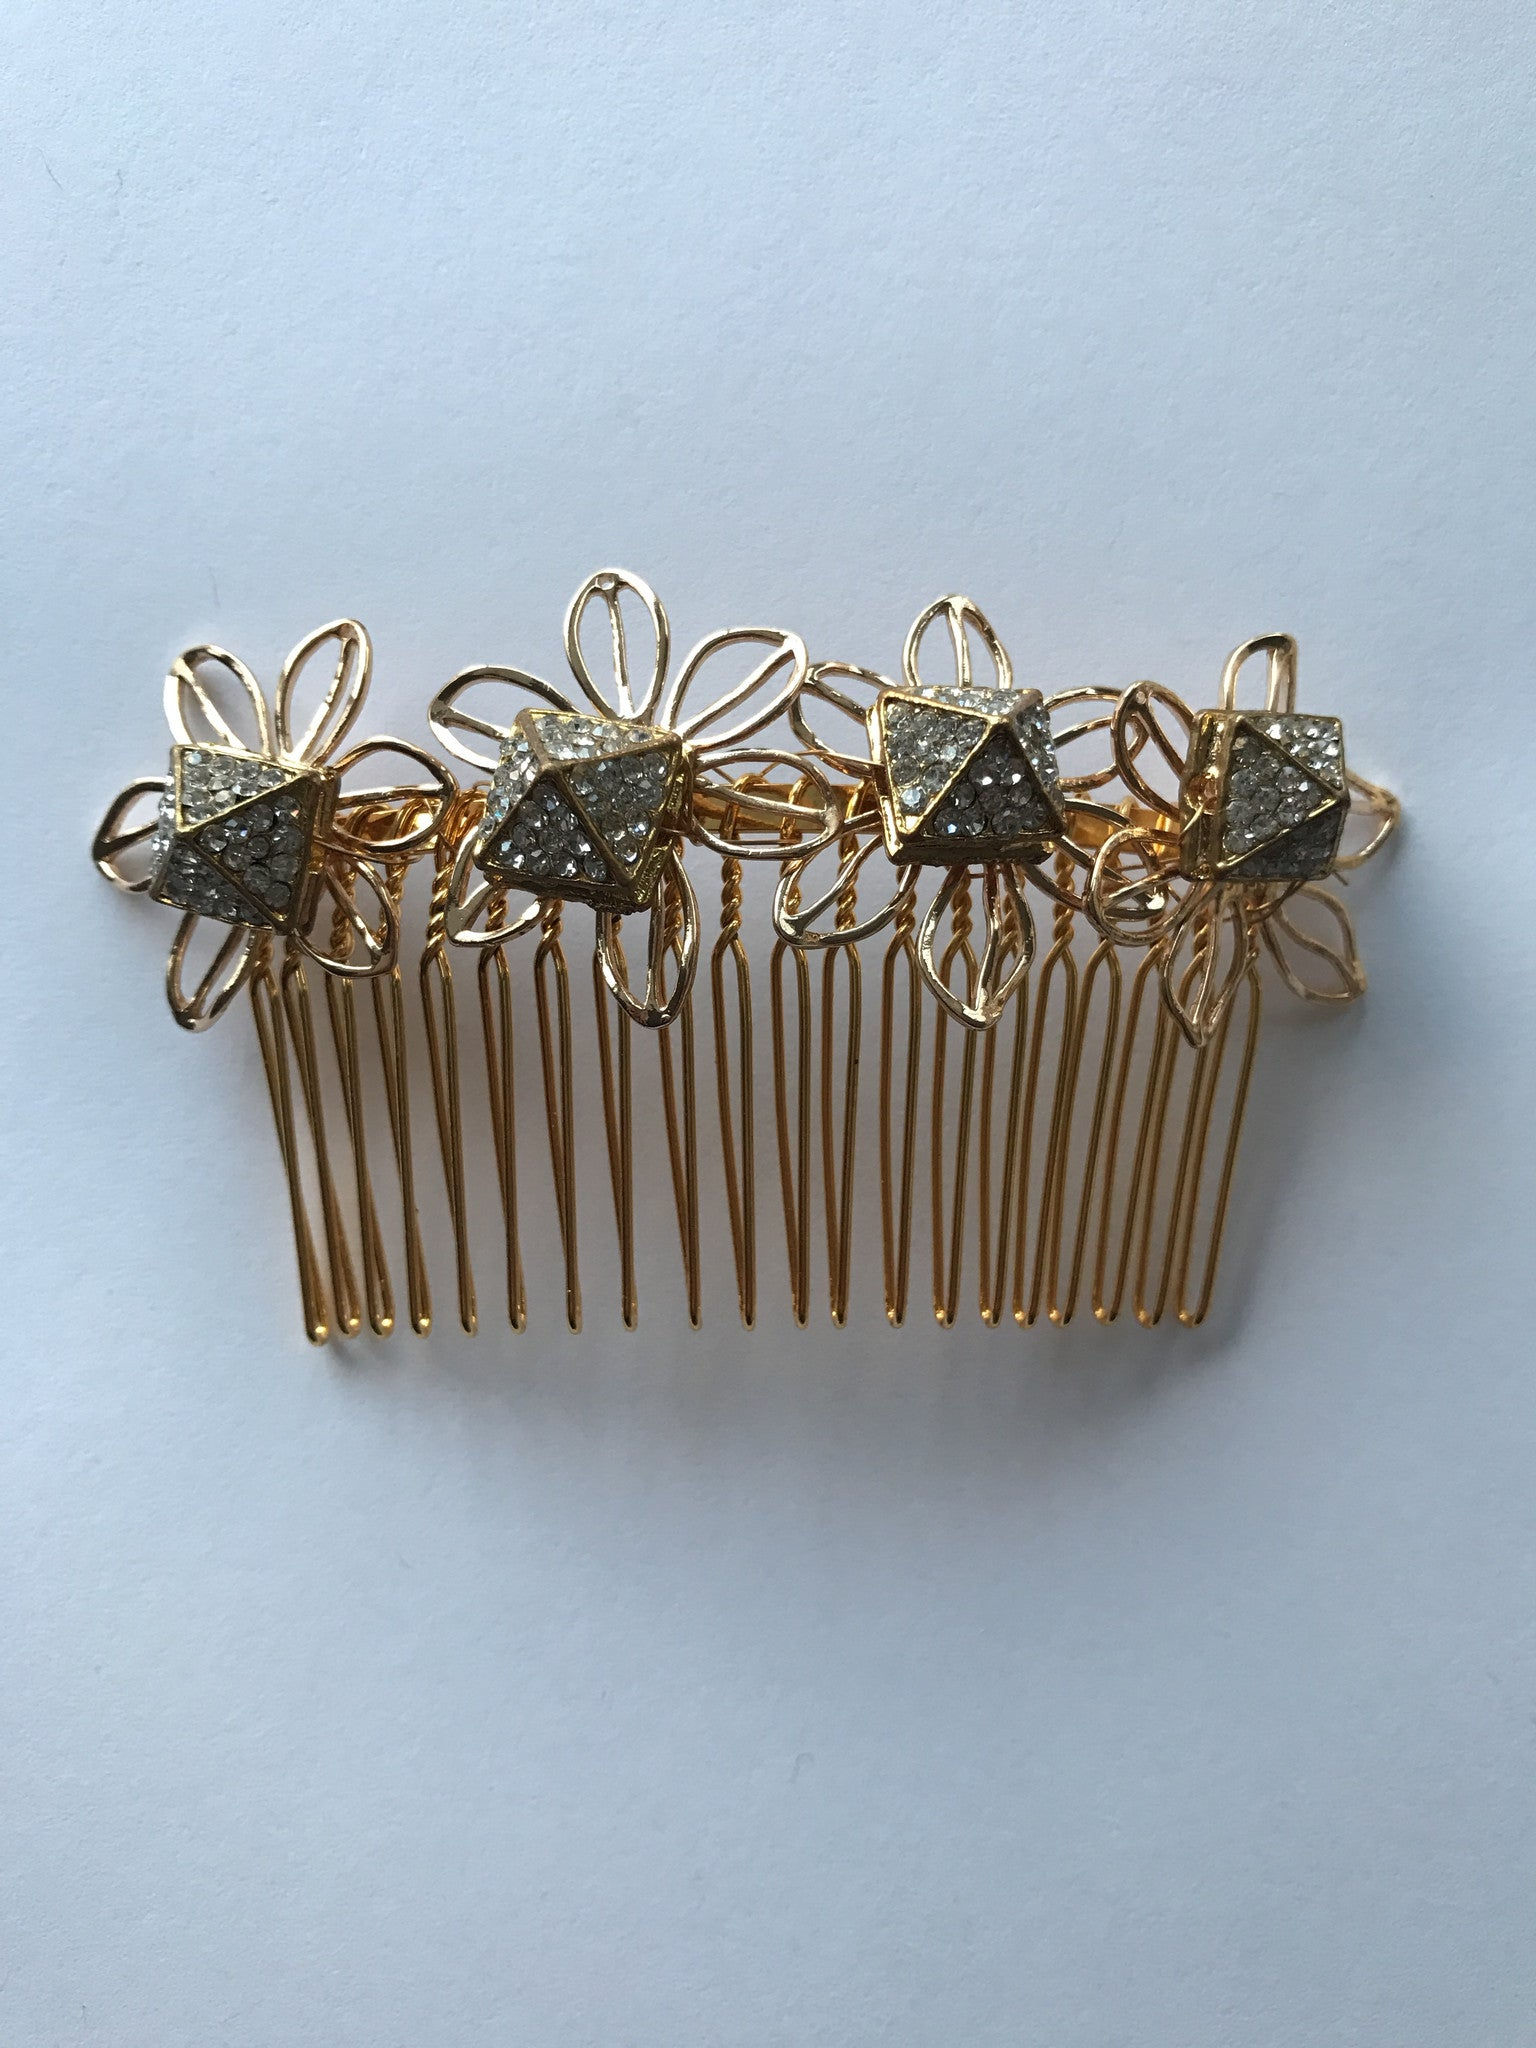 Crystal Pyramid Flower Comb